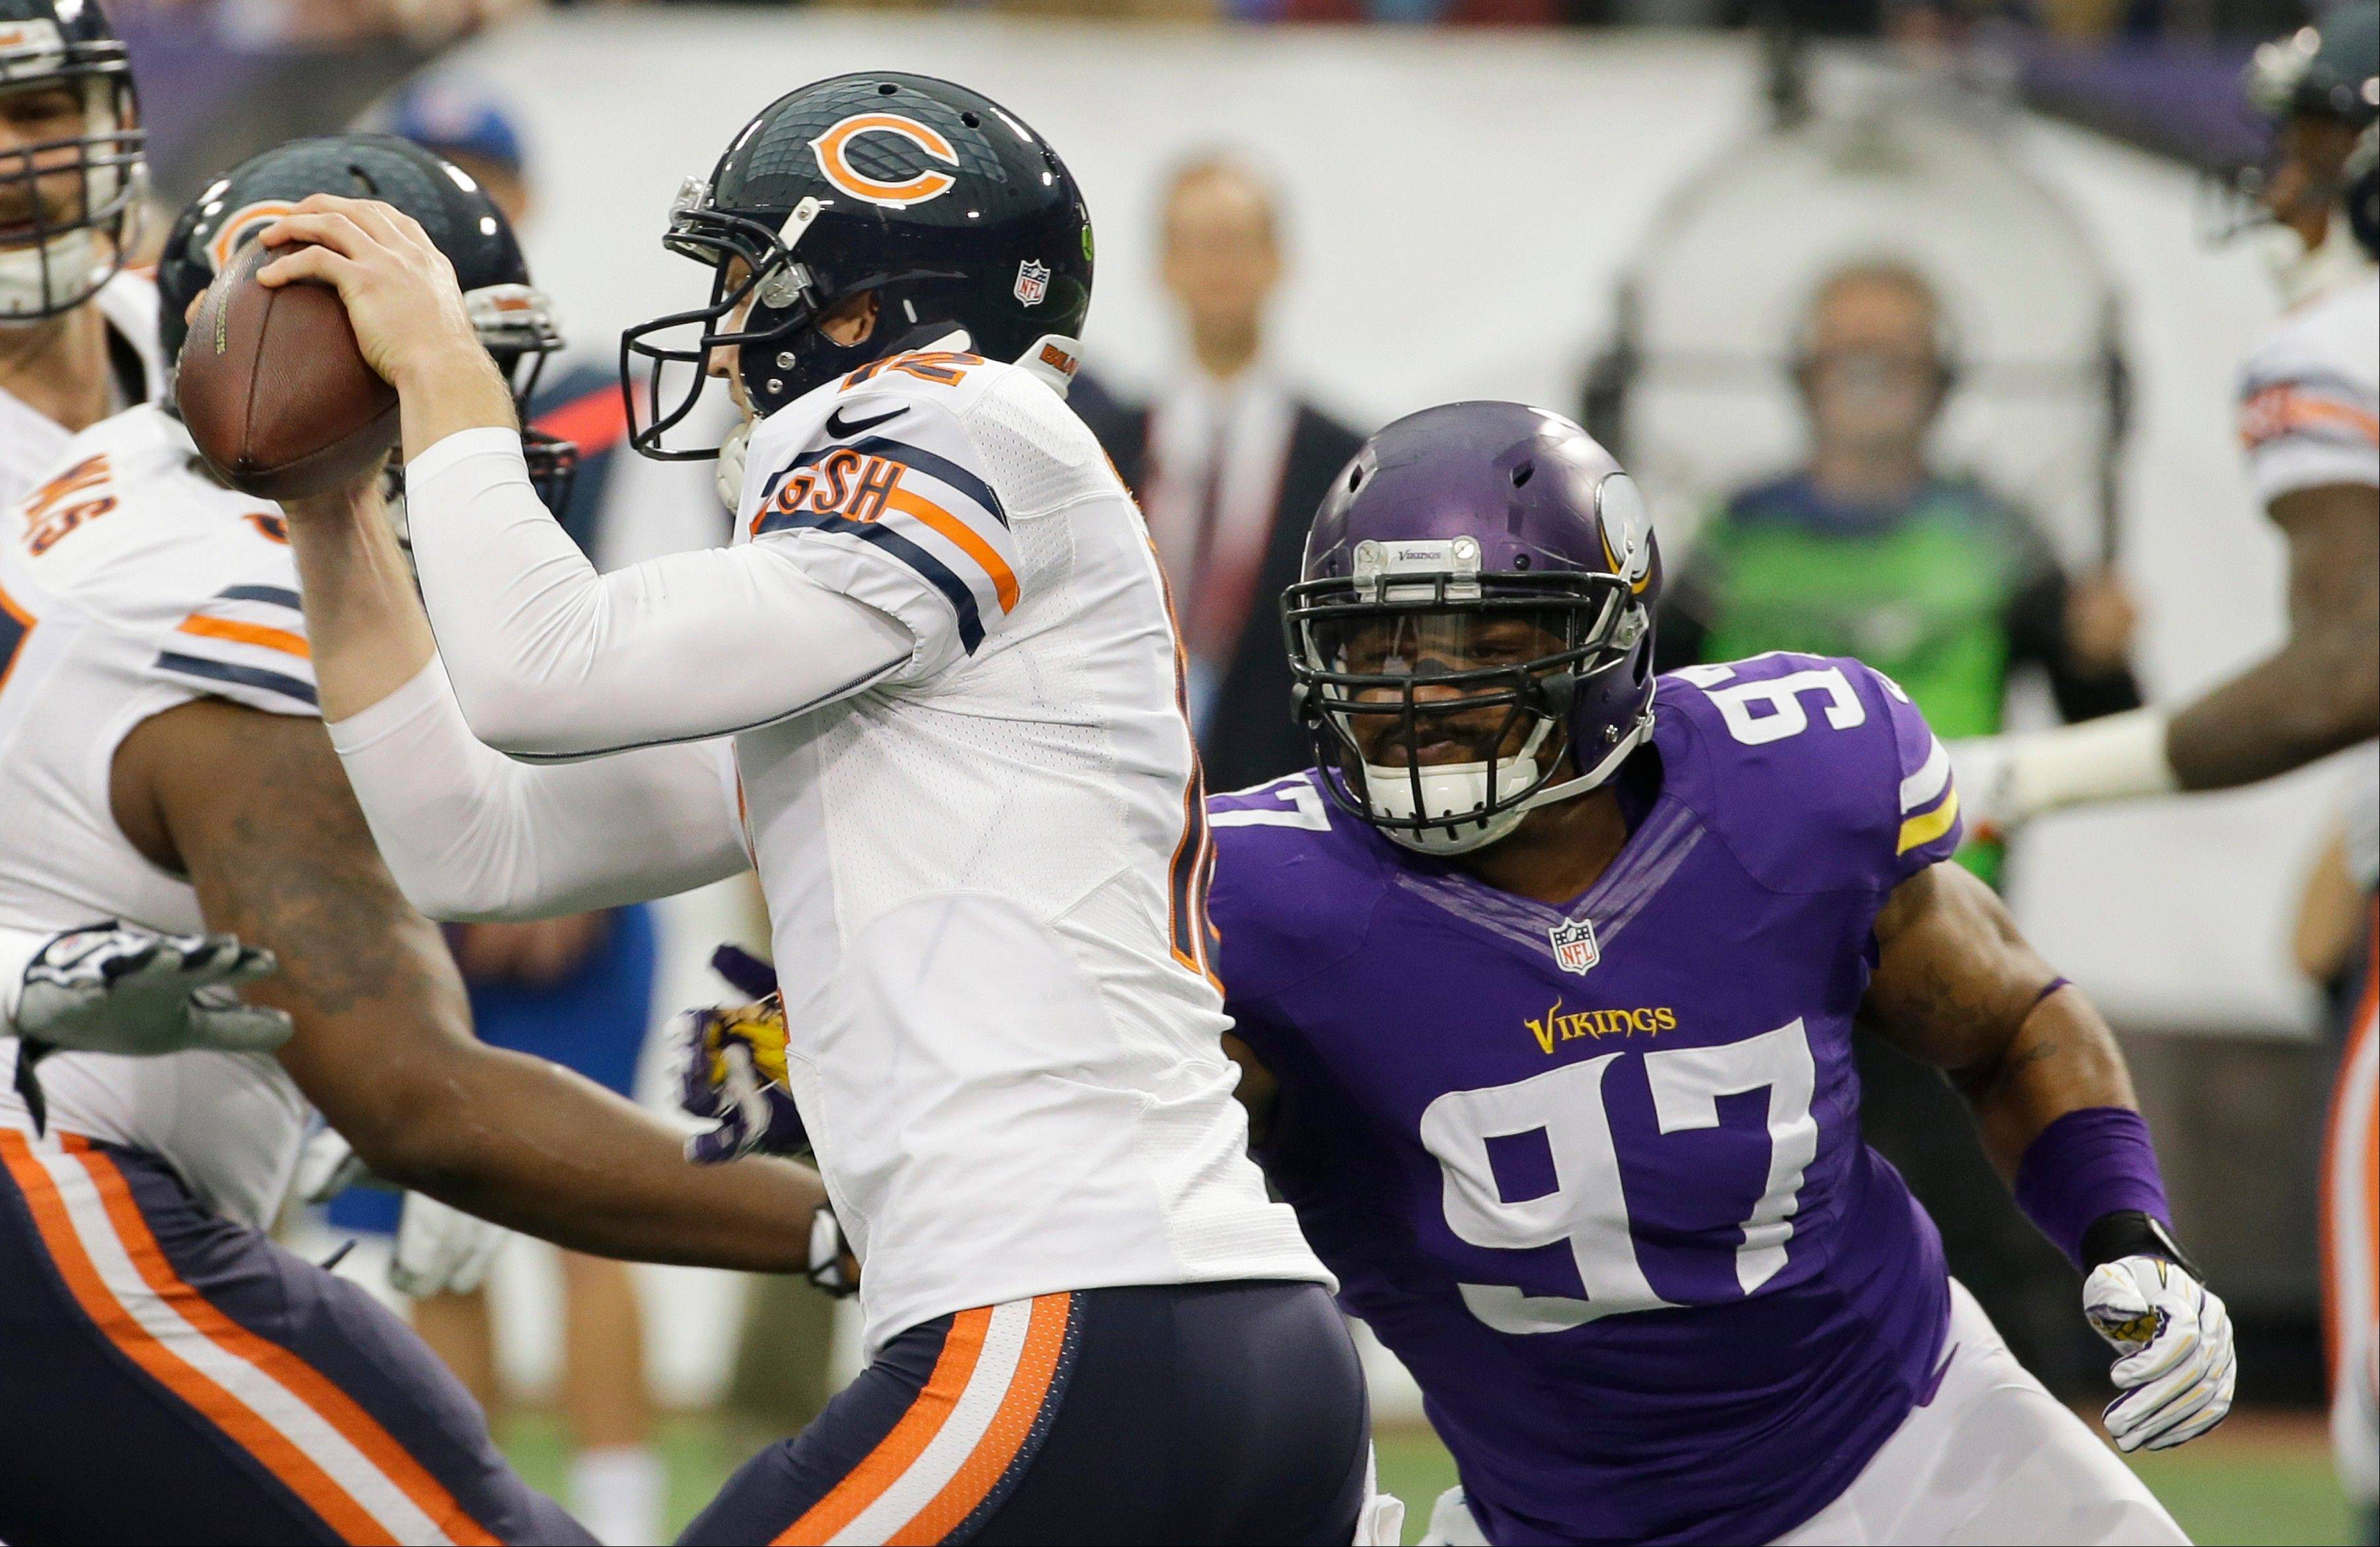 Chicago Bears quarterback Josh McCown, left, runs from Minnesota Vikings defensive end Everson Griffen during the first half.